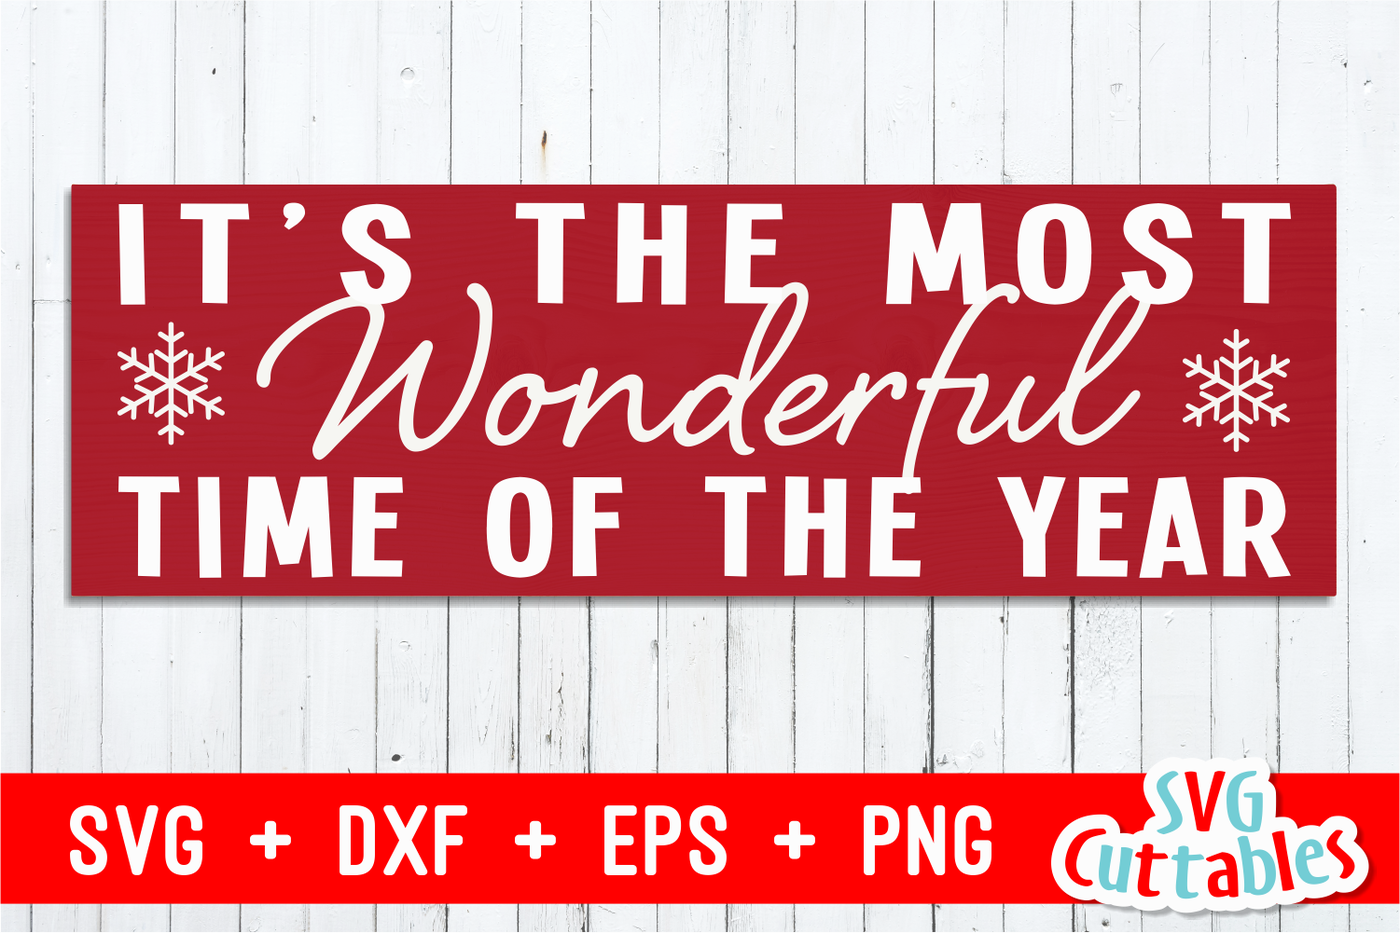 It S The Most Wonderful Time Of The Year Christmas Cut File By Svg Cuttables Thehungryjpeg Com